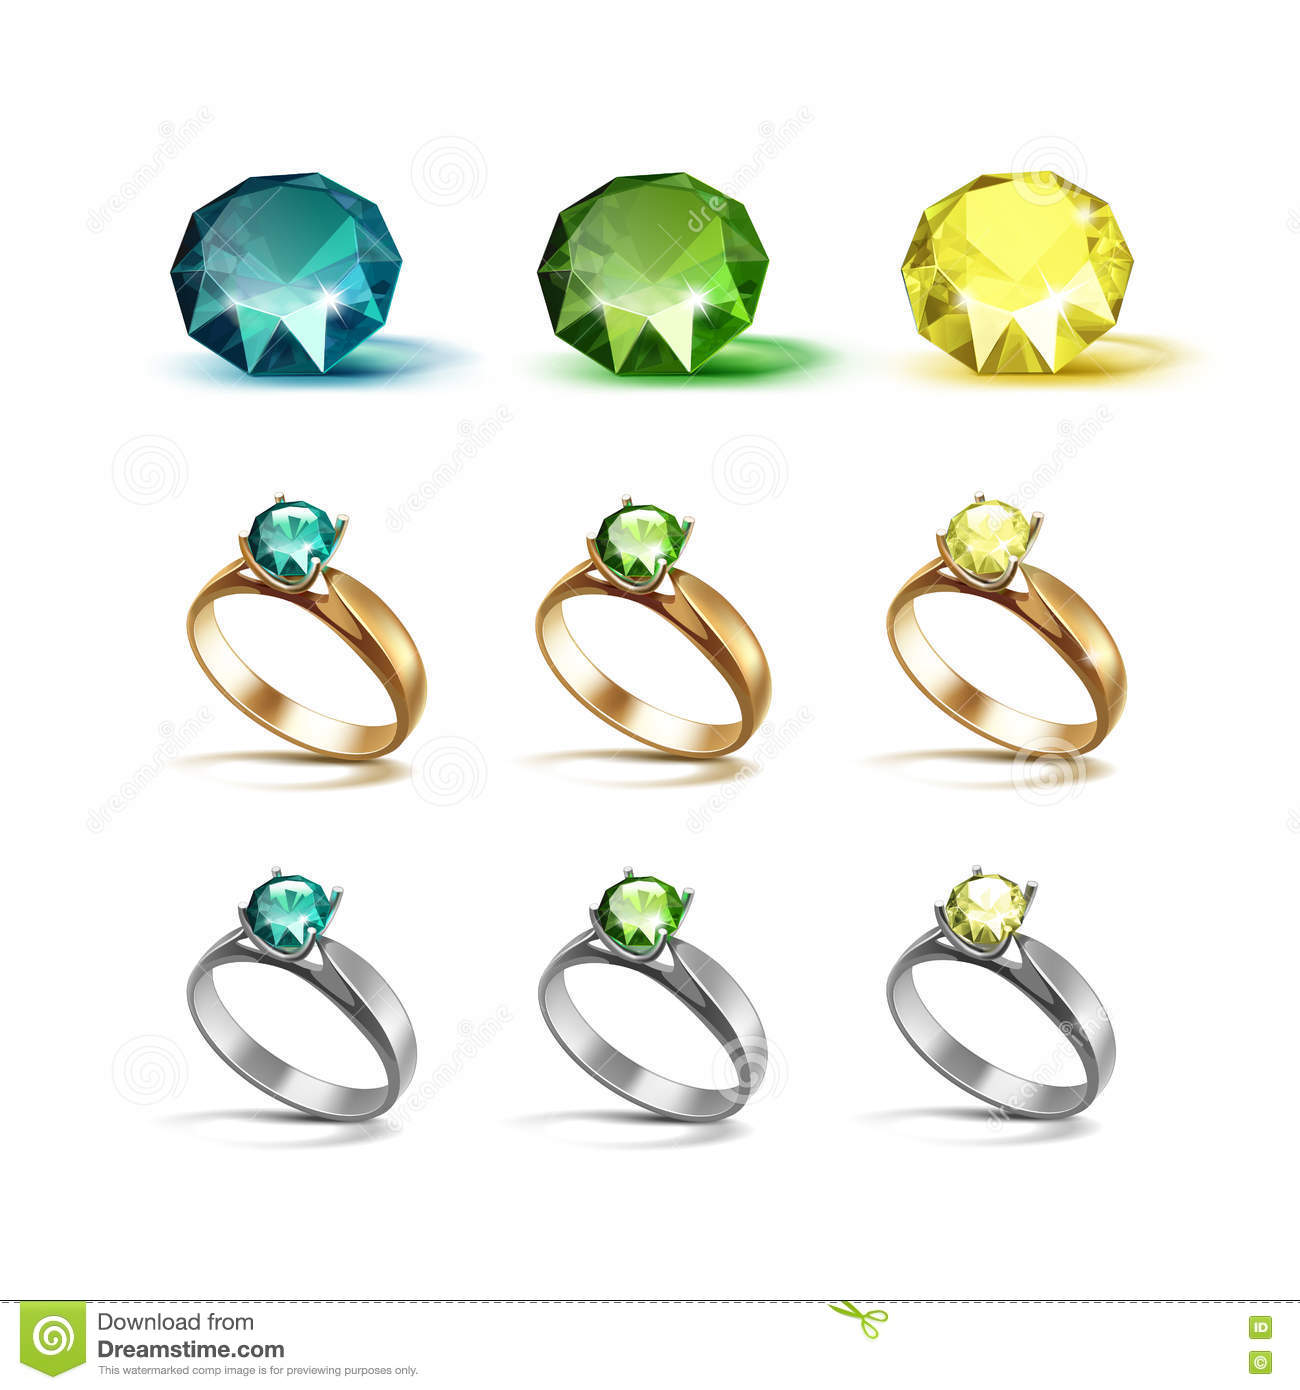 Gold Siver Engagement Rings With Emerald Green And Yellow Diamonds